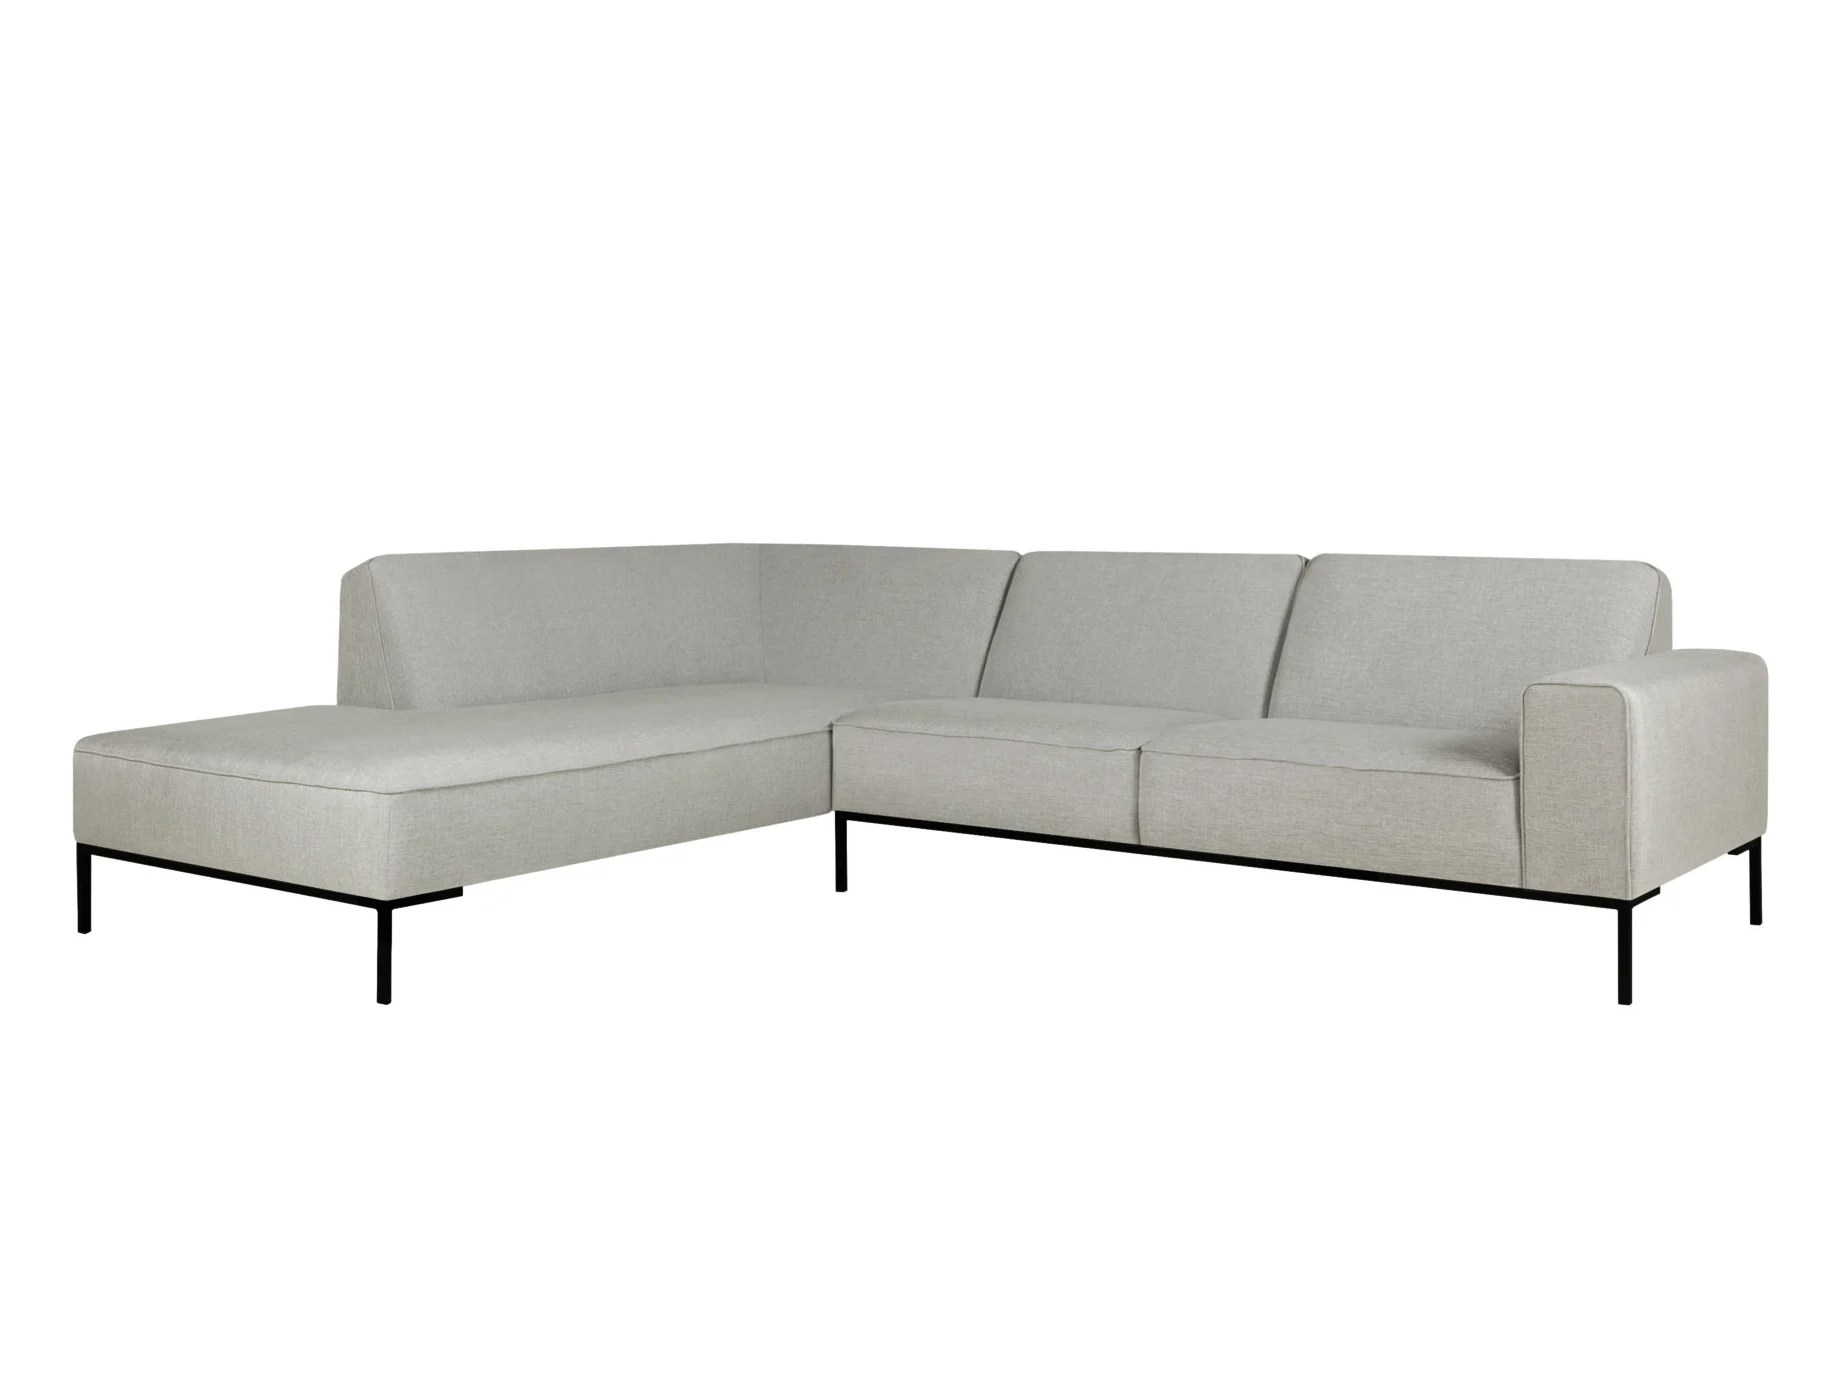 chaise longue fabric sofa beds ireland ville with collection by sits